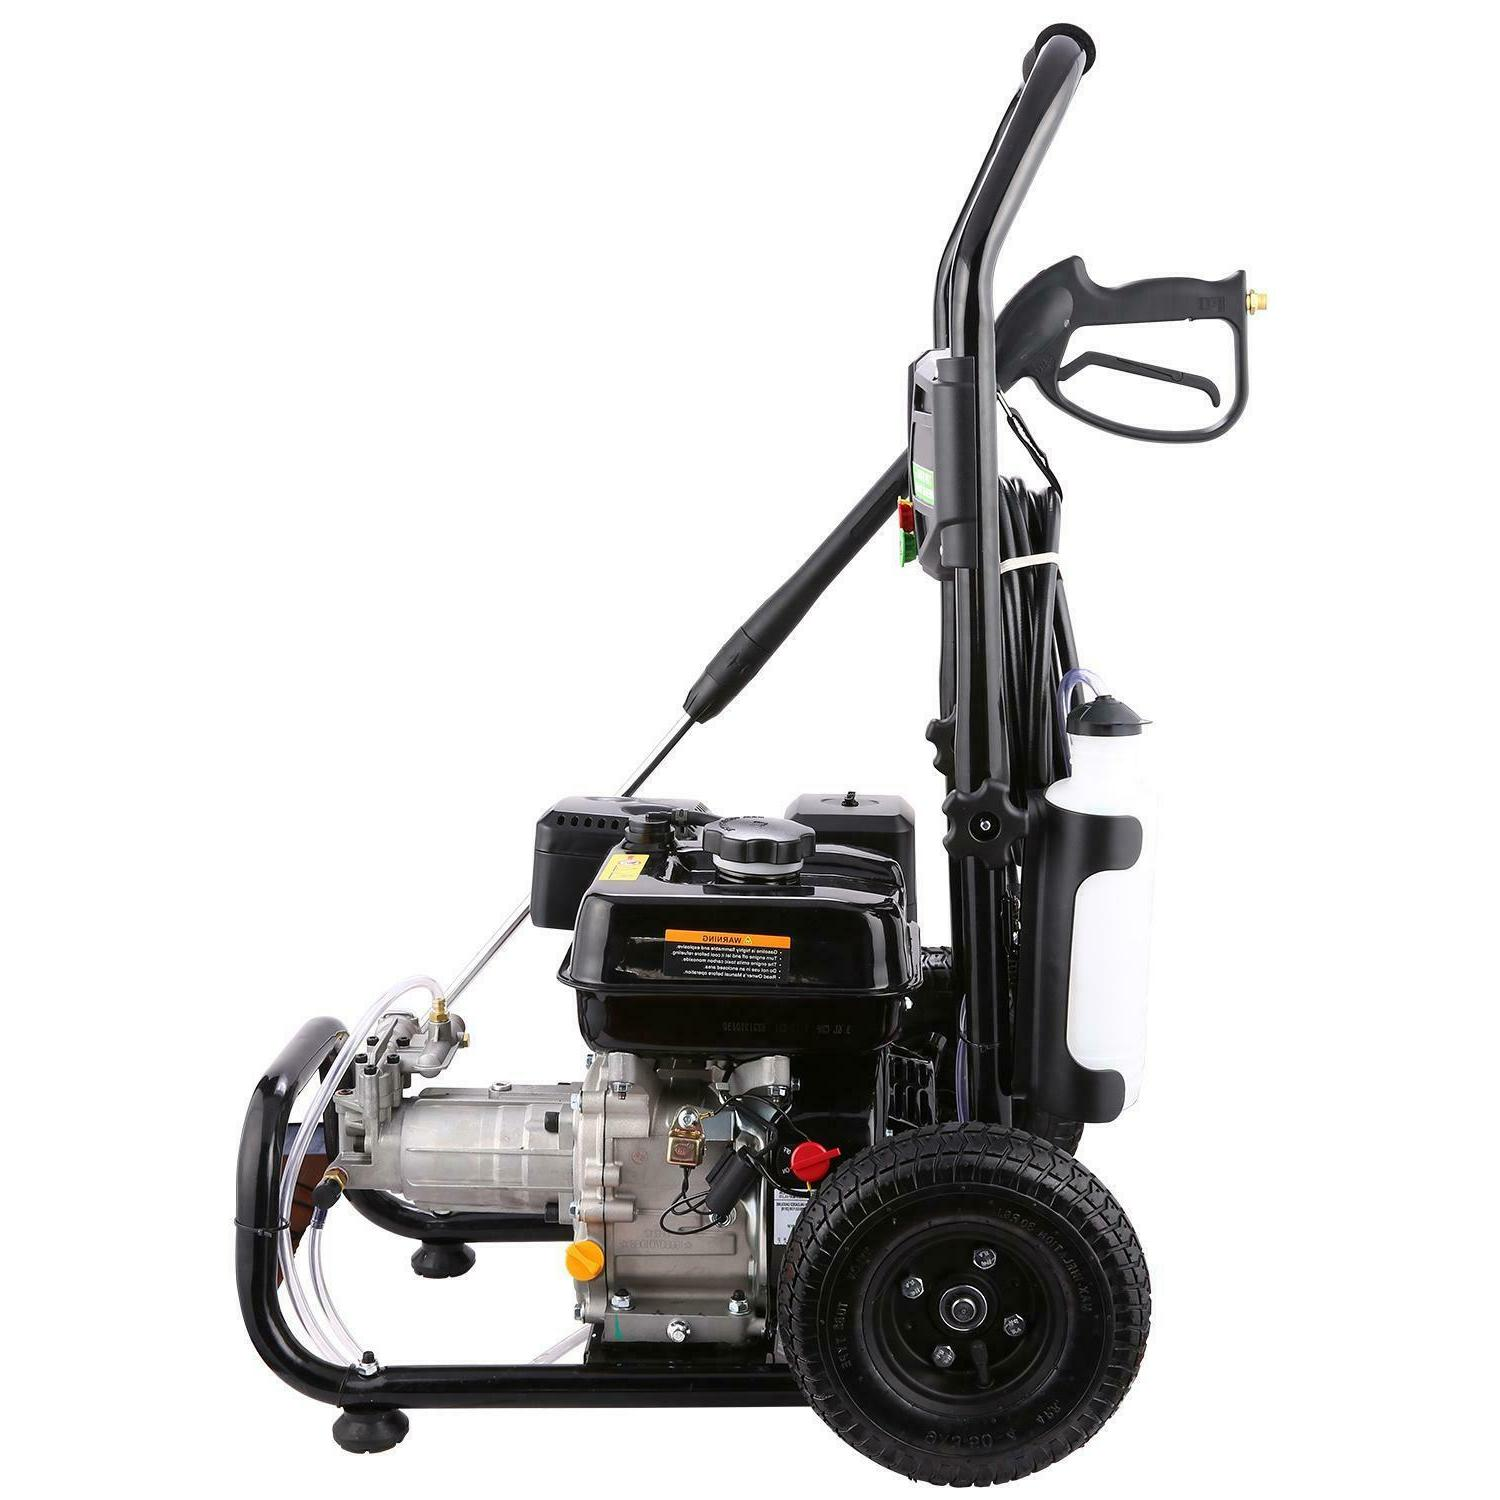 7HP Powered Pressure Washer Multi Pattern 3600 2.8GPM